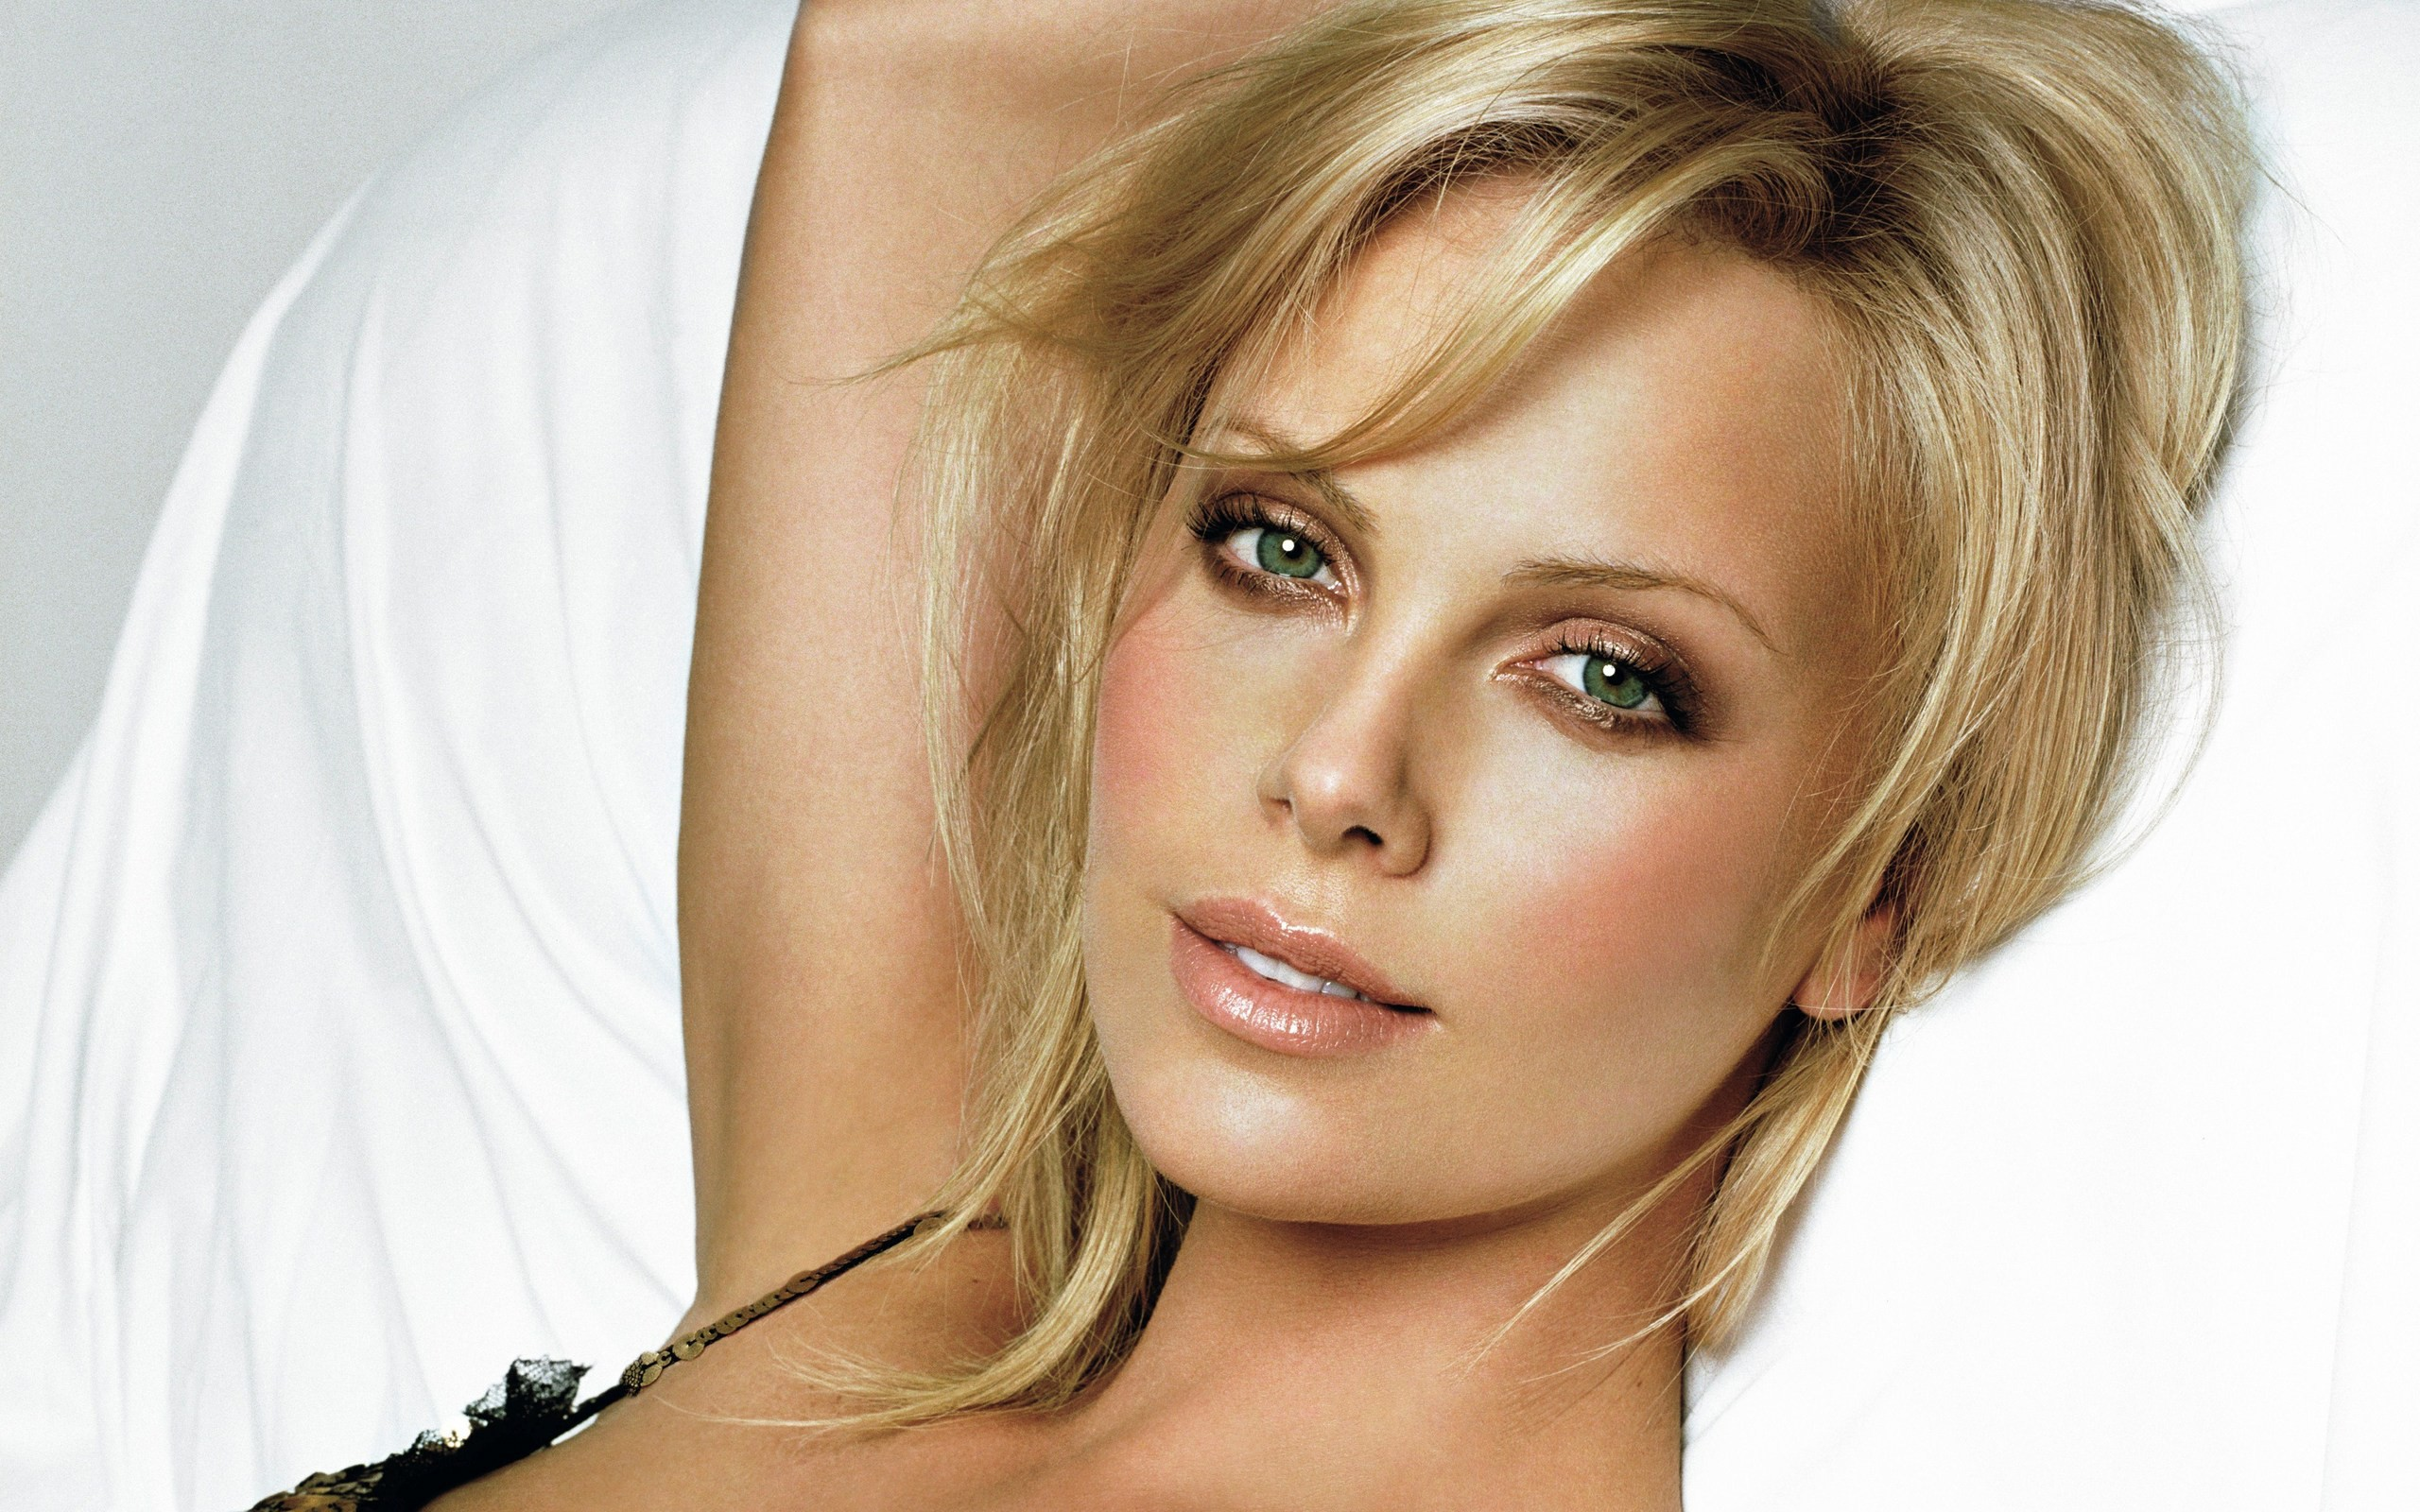 Fonds d'écran Charlize Theron PC et Tablettes (iPad, etc...)